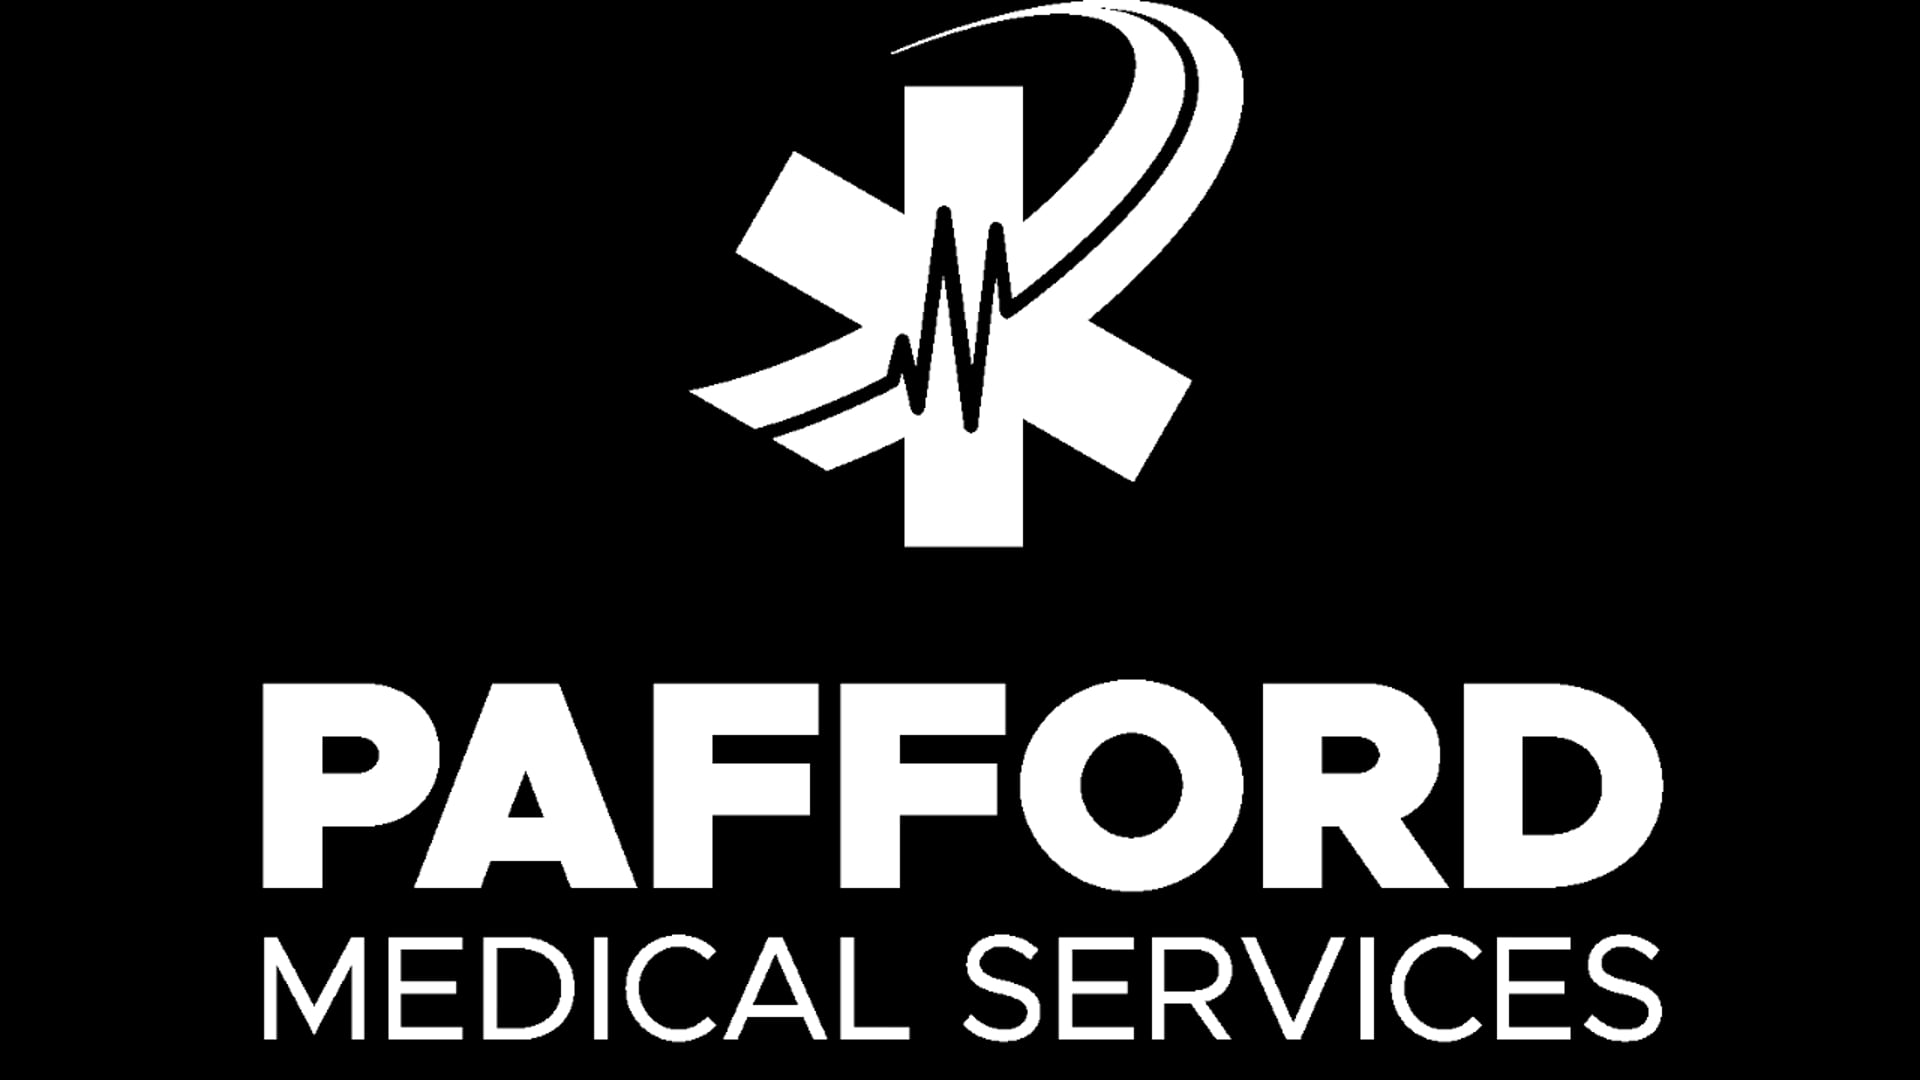 Pafford Medical Services: Celebrating 50 years